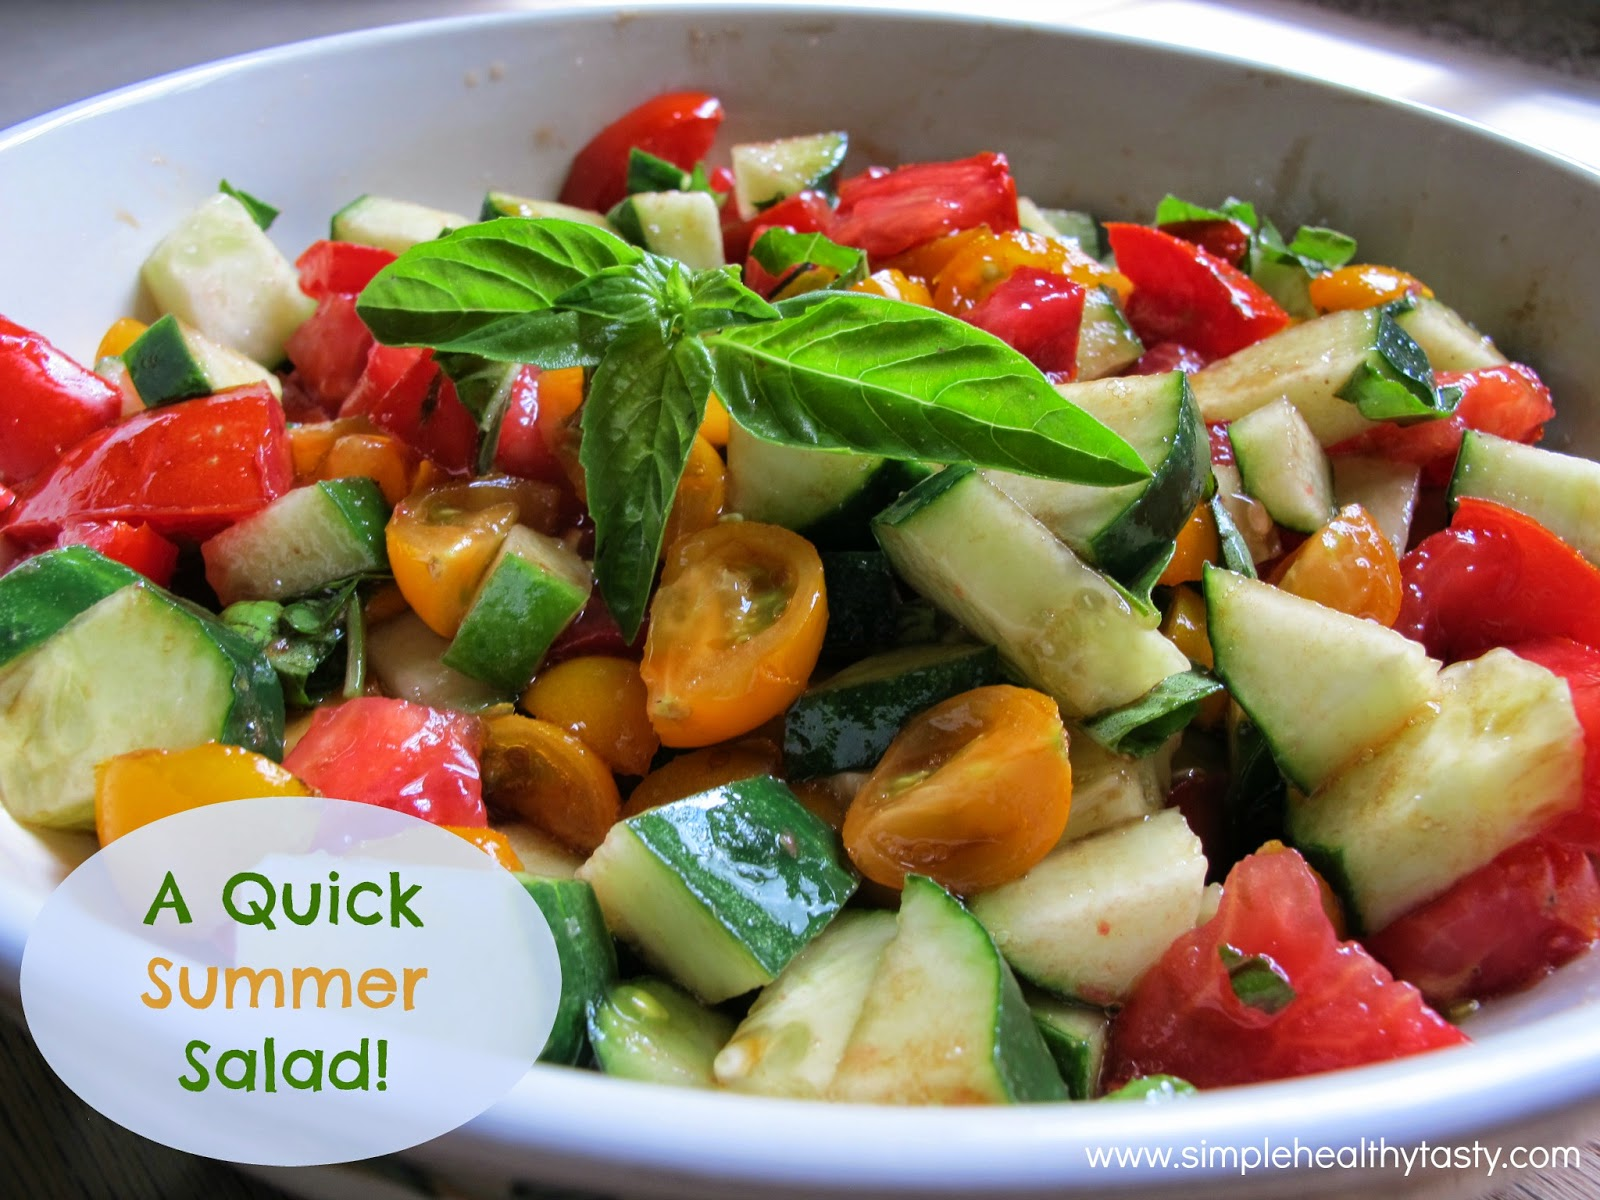 Sweet Basil, Tomato and Cucmber Salad